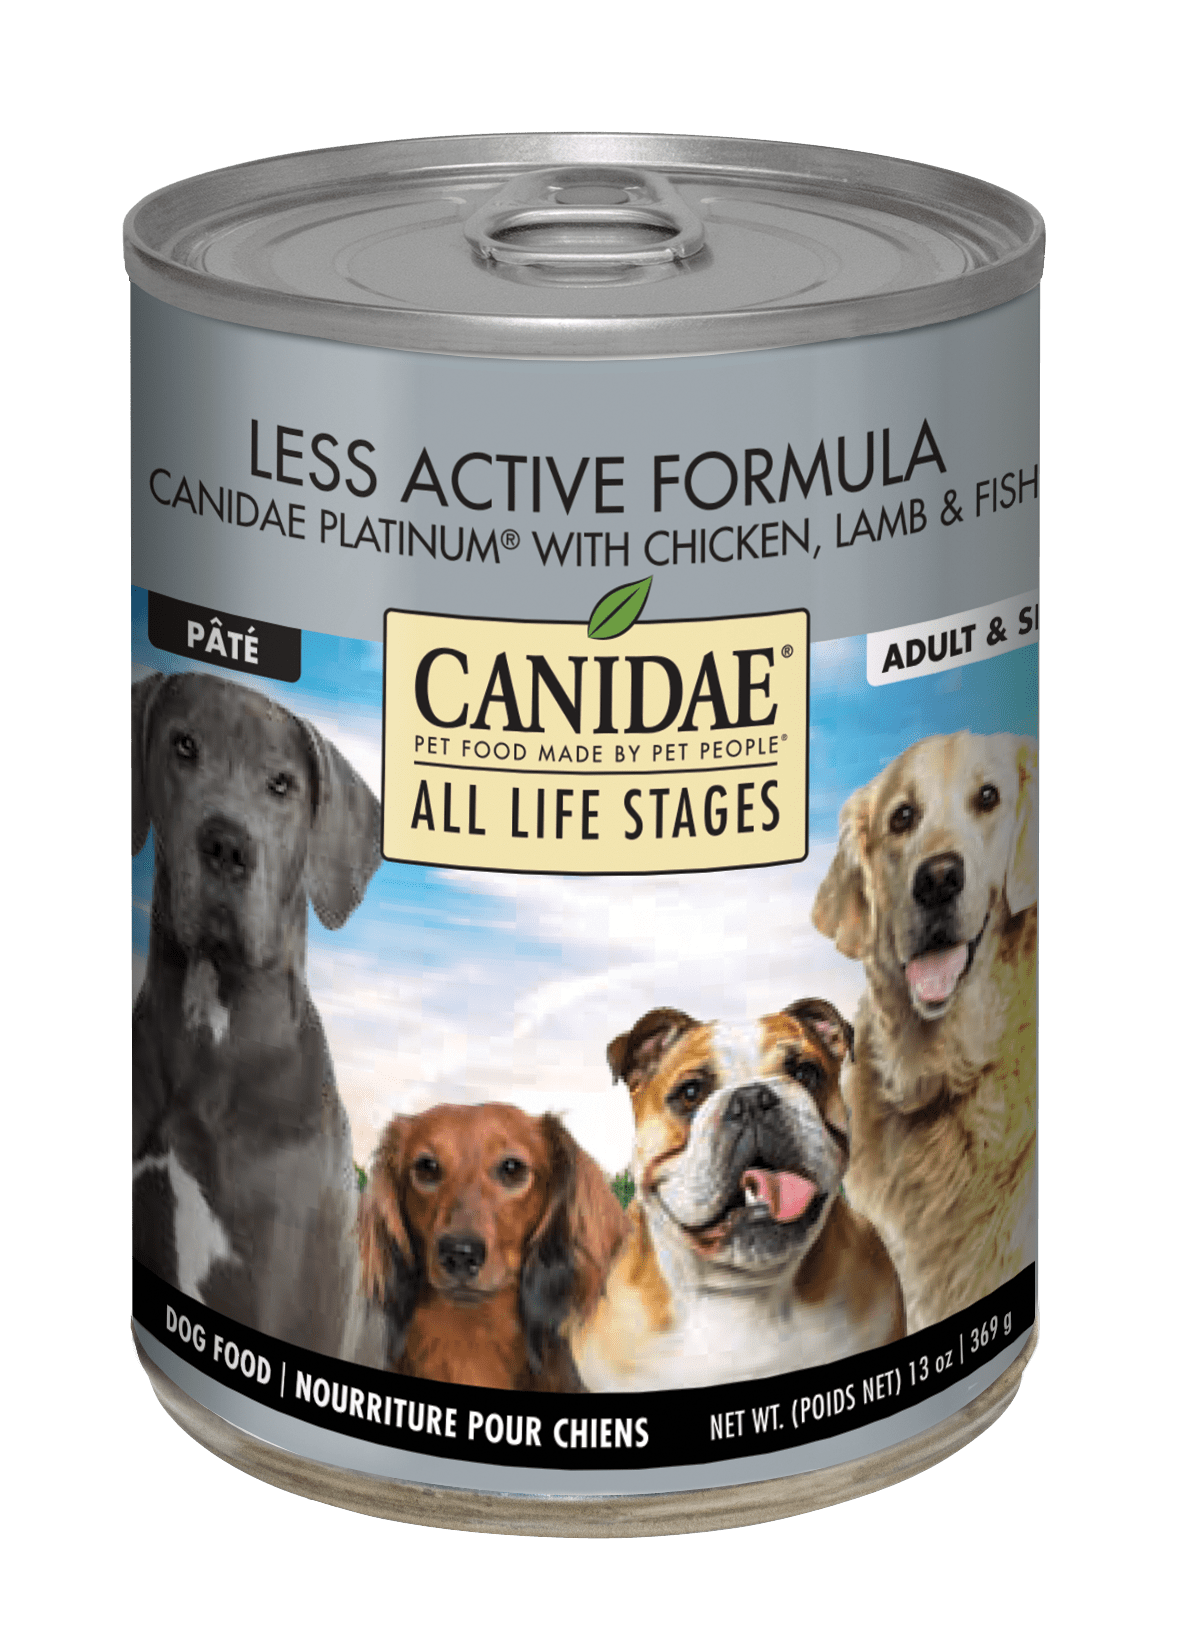 Canidae Life Stages Platinum Formula Canned Dog Food Image